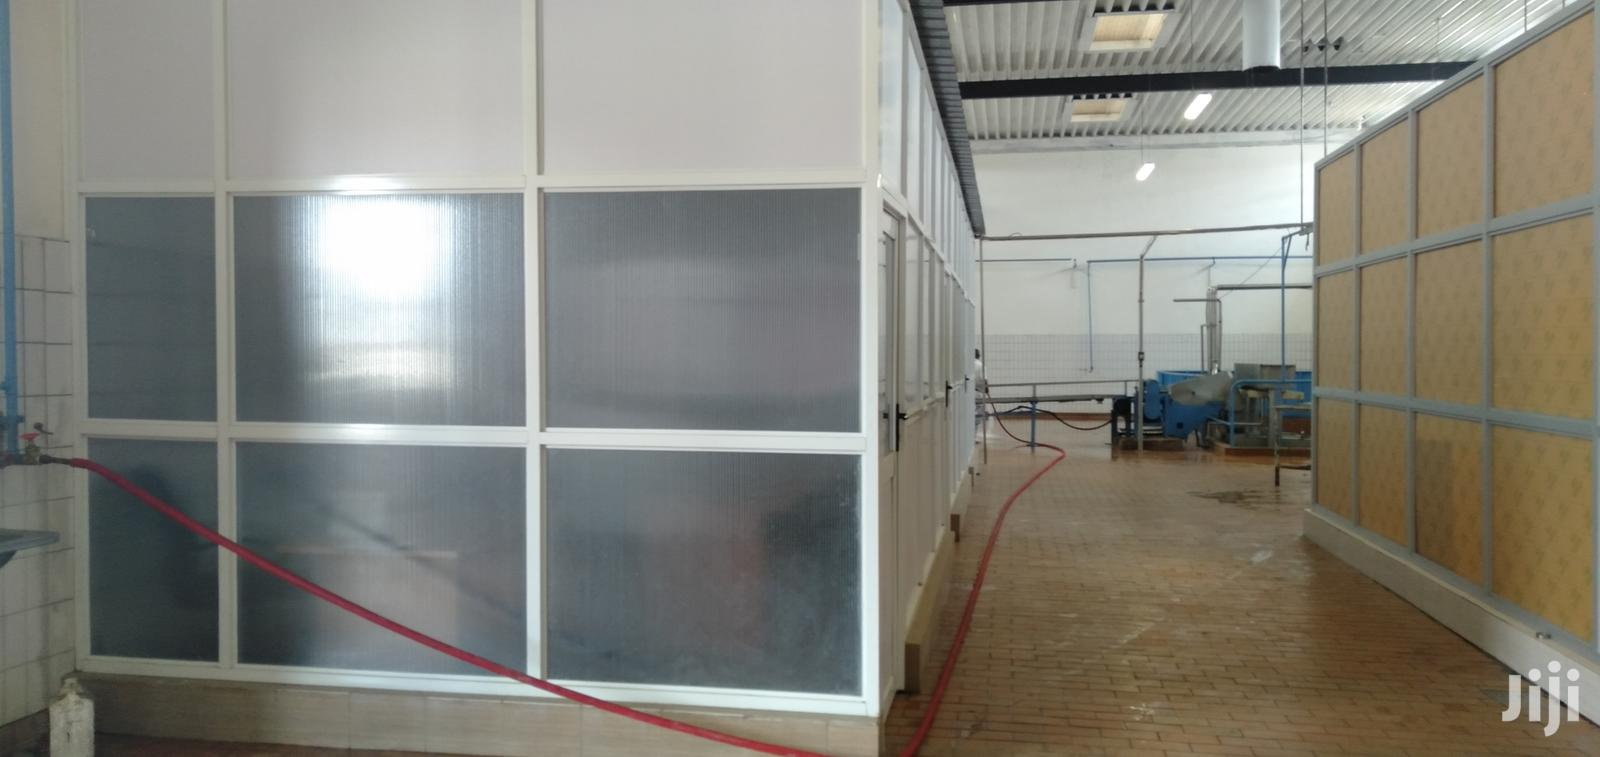 Alluminium Partitioning | Building & Trades Services for sale in Nairobi Central, Nairobi, Kenya